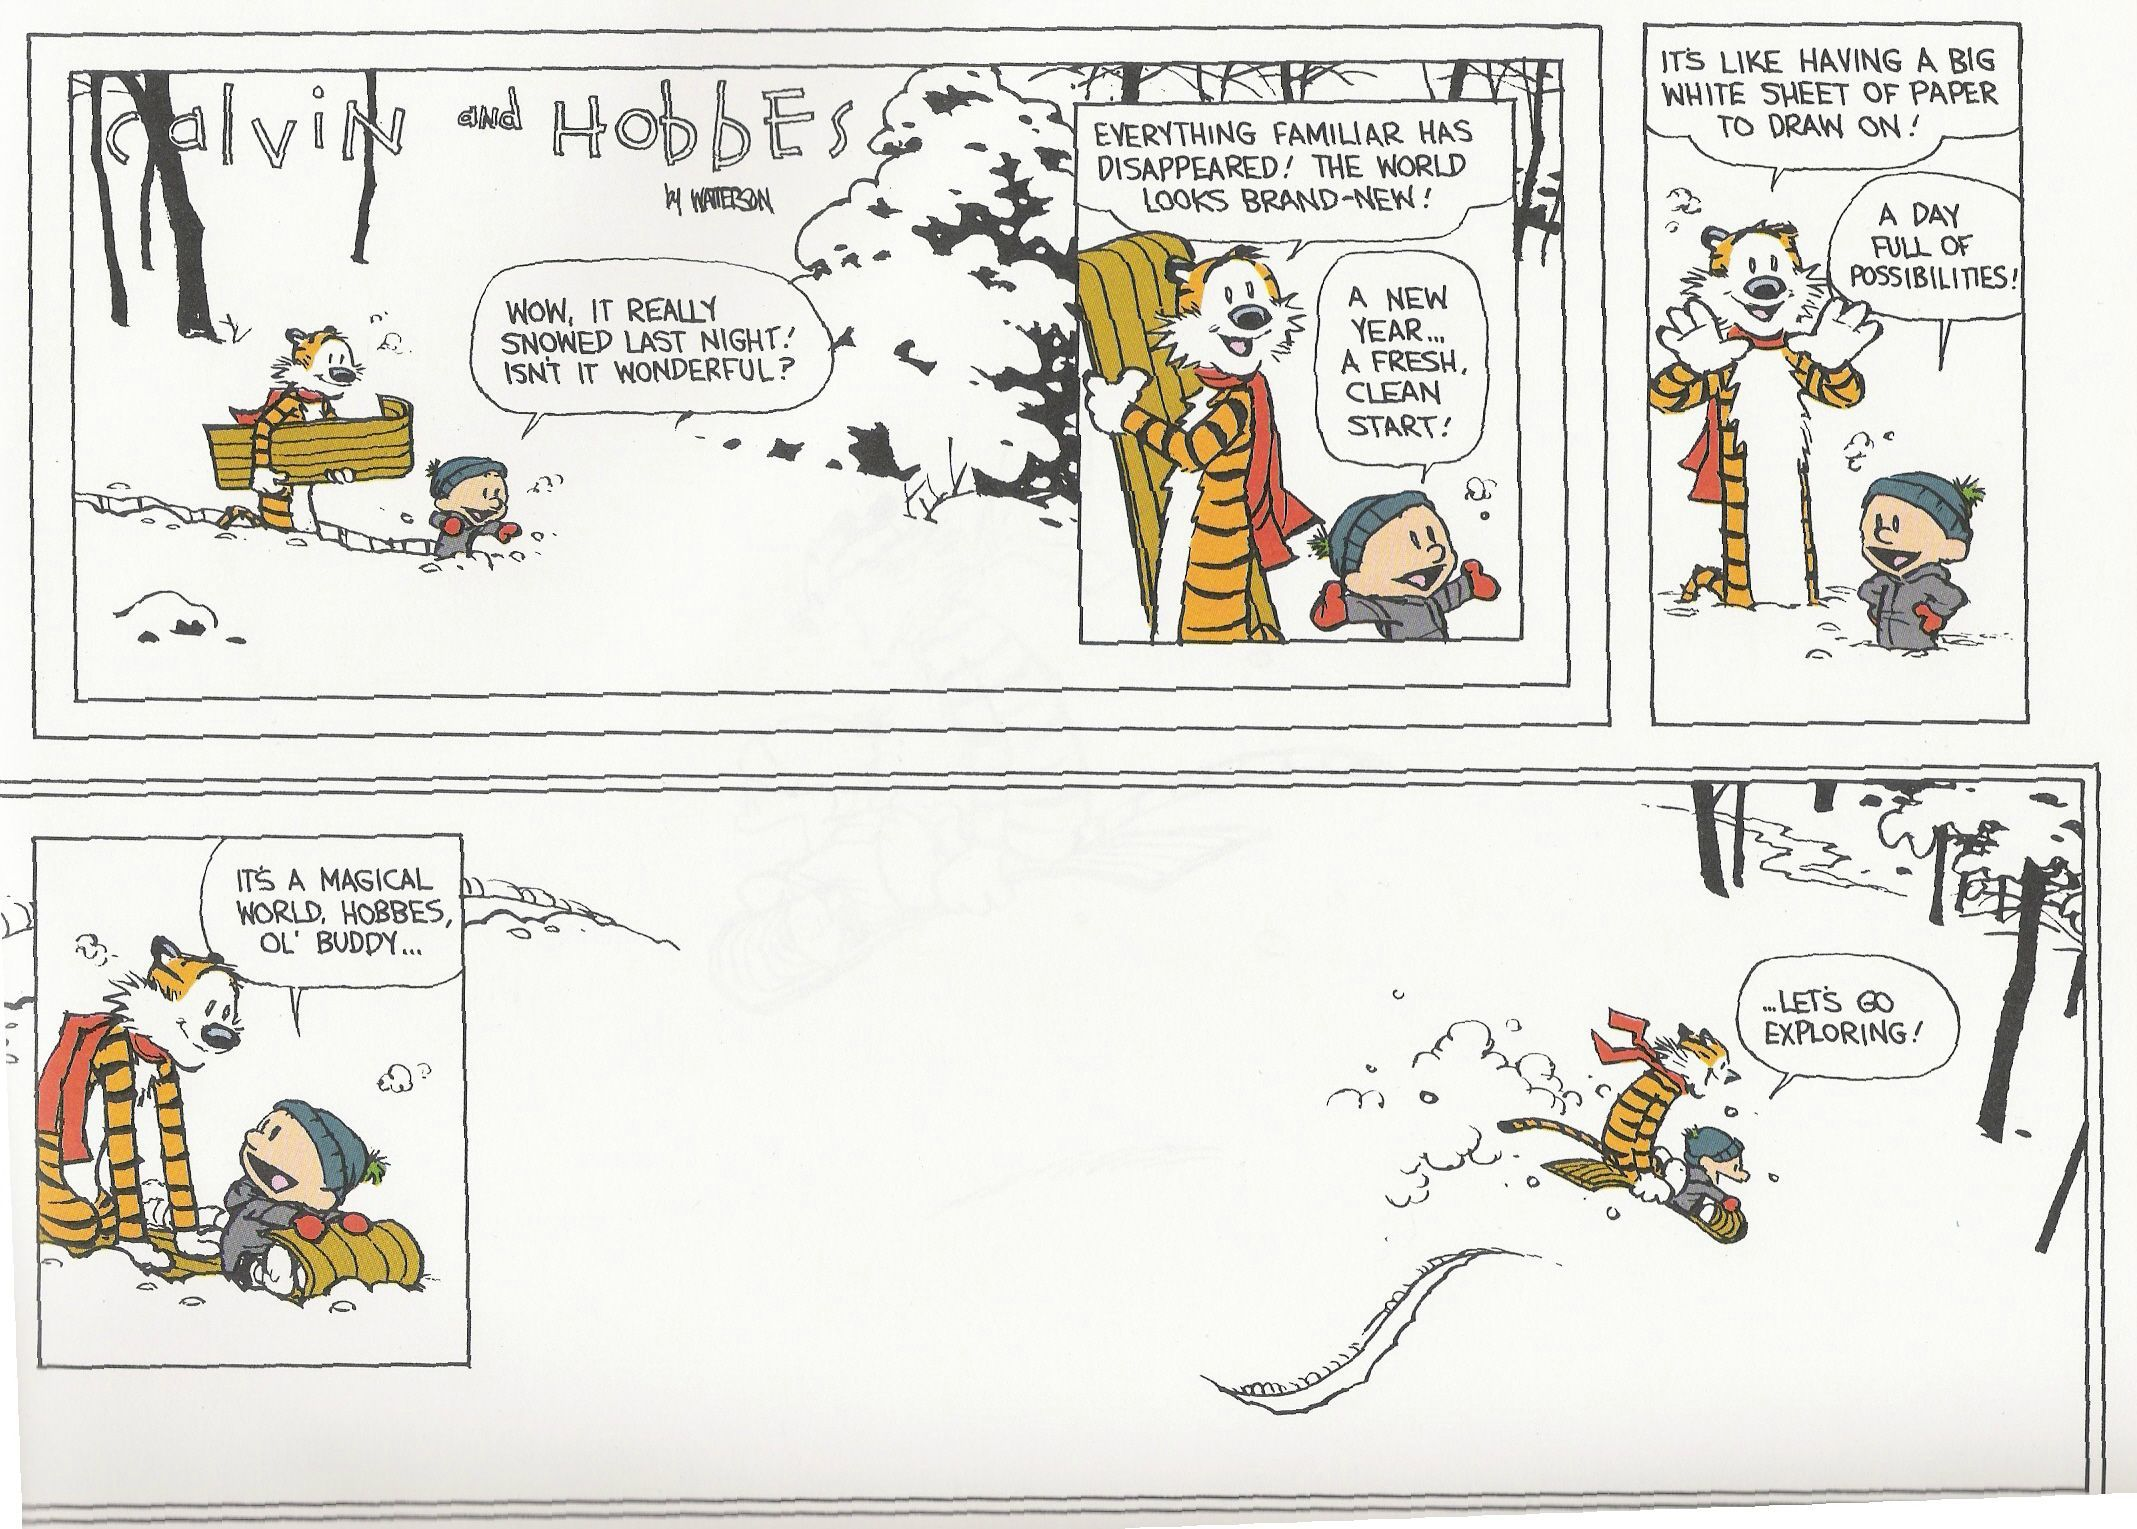 Consider, final calvin and hobbes comic strip